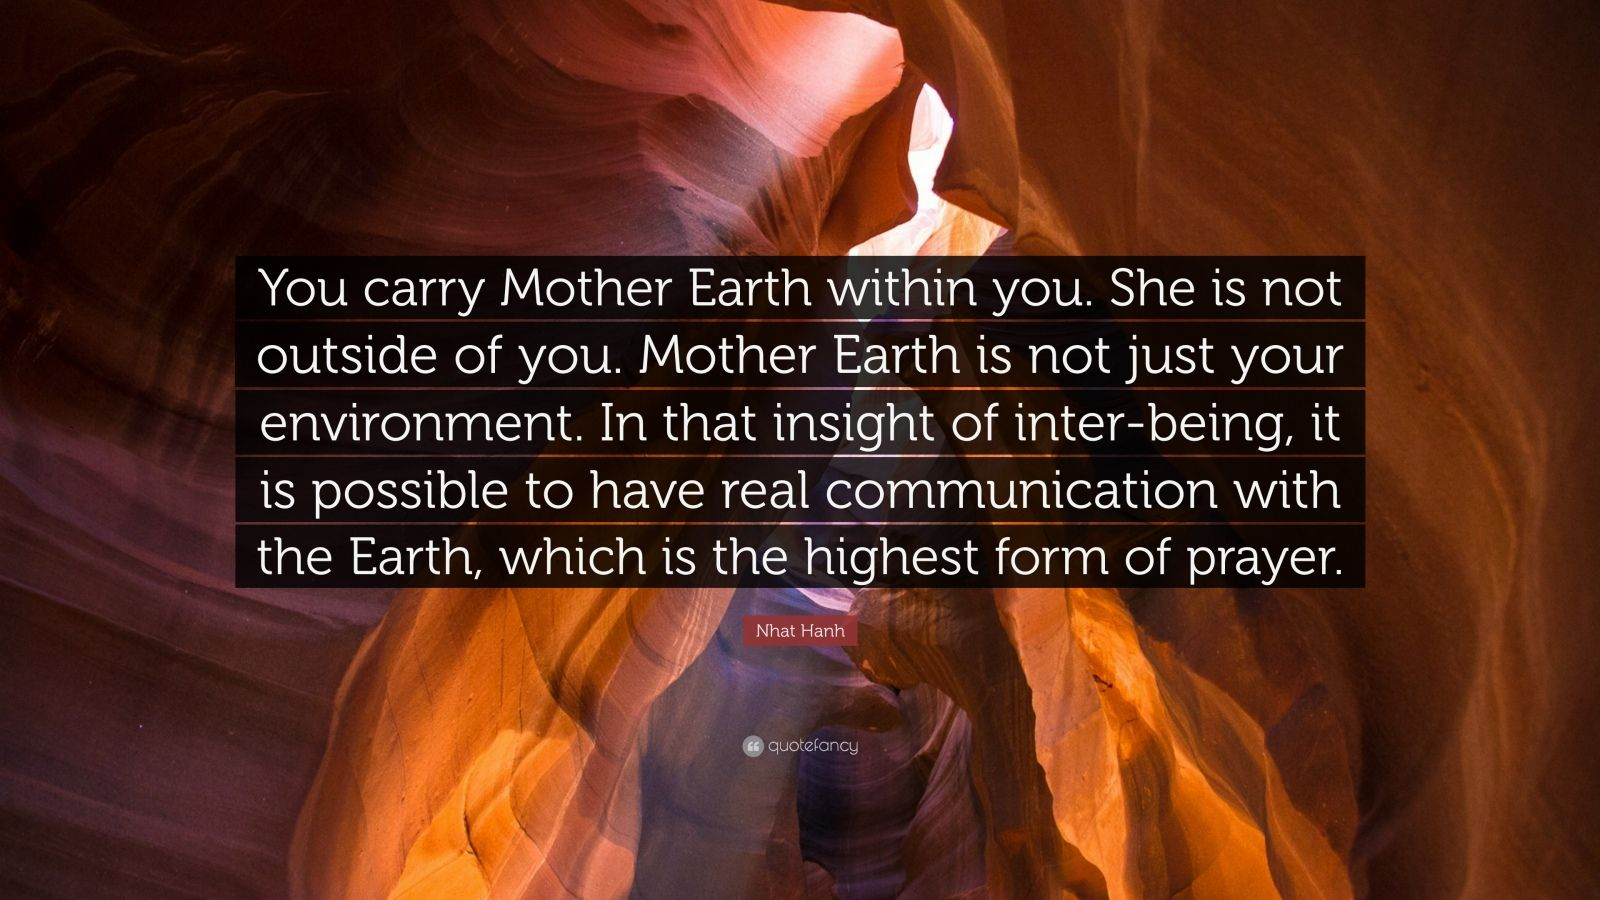 "Nhat Hanh Quote: ""You carry Mother Earth within you. She is not outside of you. Mother Earth is not just your environment. In that insight of inter-being, it is possible to have real communication with the Earth, which is the highest form of prayer."""